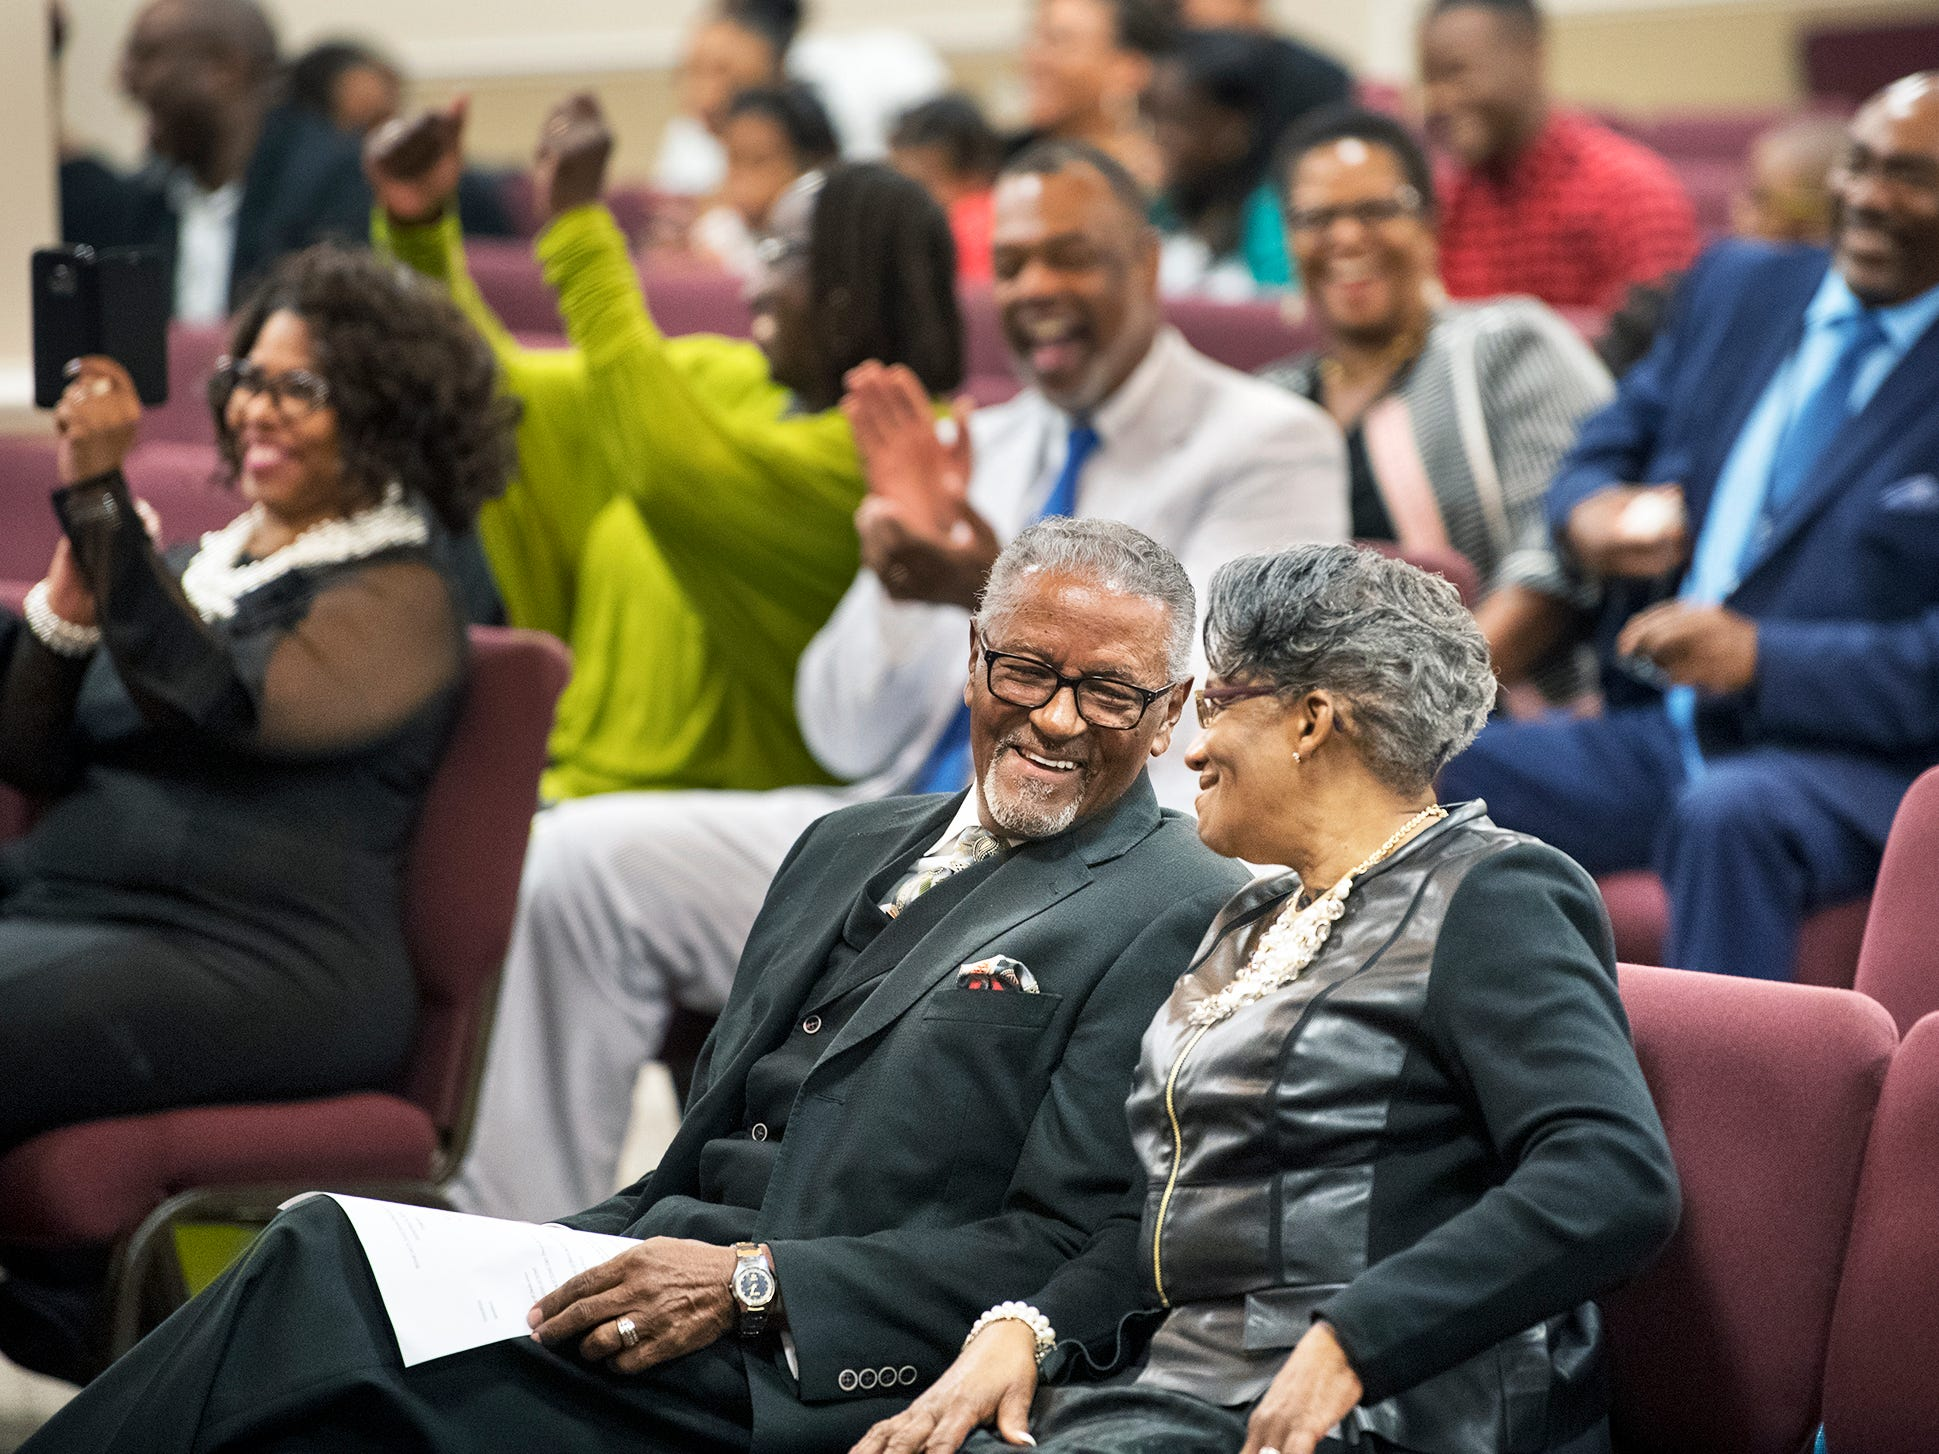 Bishop Carl H. Scott, left, and his wife Diane exchange a glance during a Bishop Carl H. Scott Street Naming Ceremony at Bible Tabernacle Church. A section of South Pine Street was renamed to honor Scott.